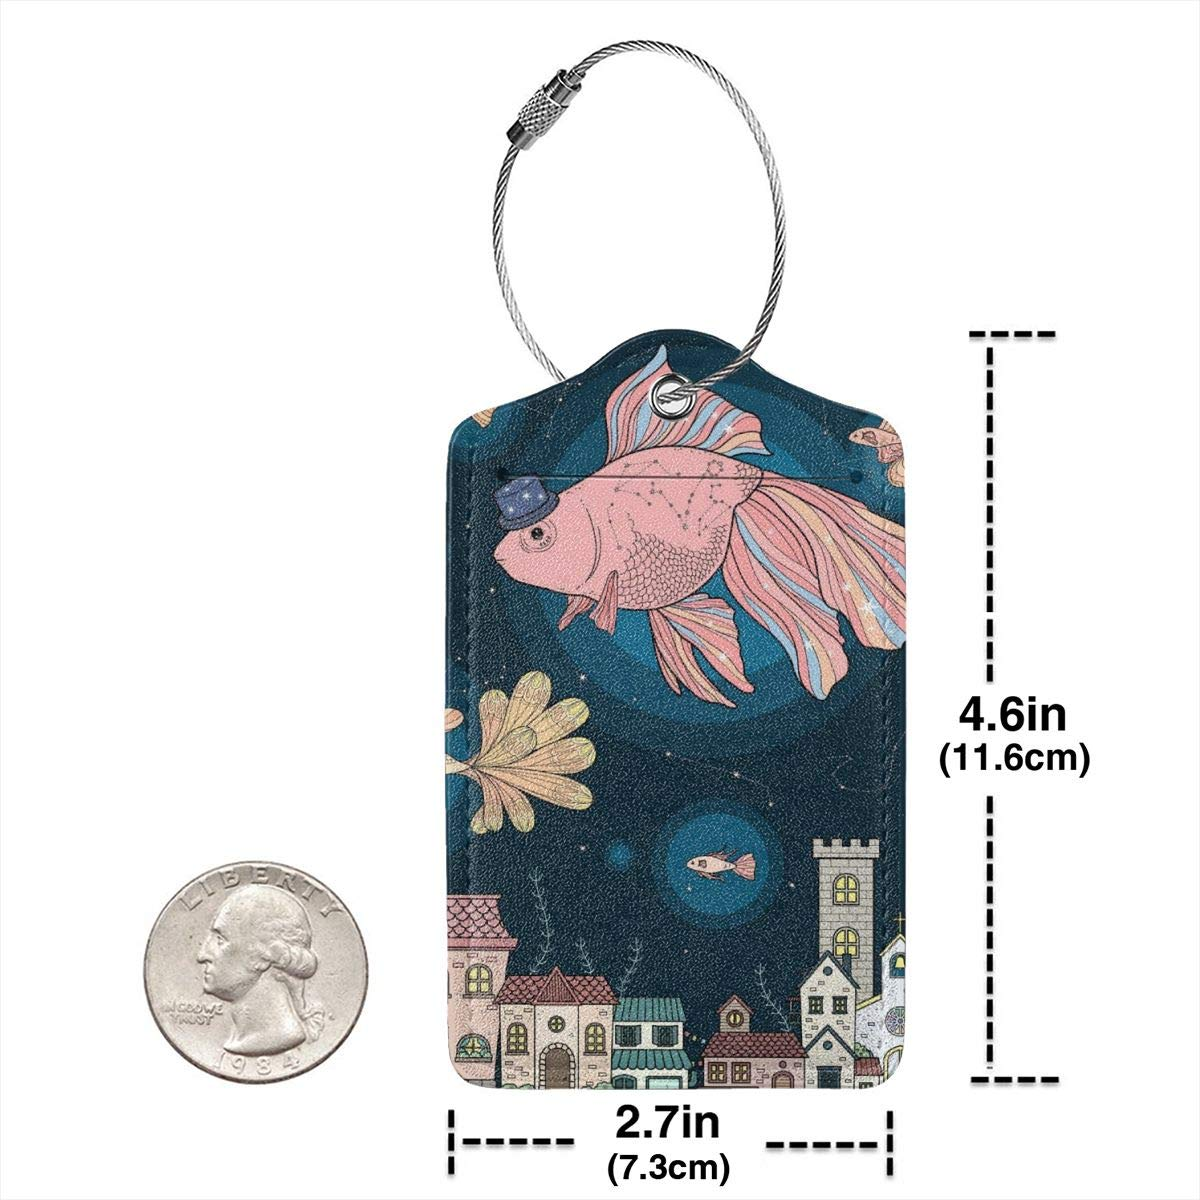 Leather Luggage Tags Suitcase Tags Art Drawings Bag Travel Accessories For Women 2 PCS